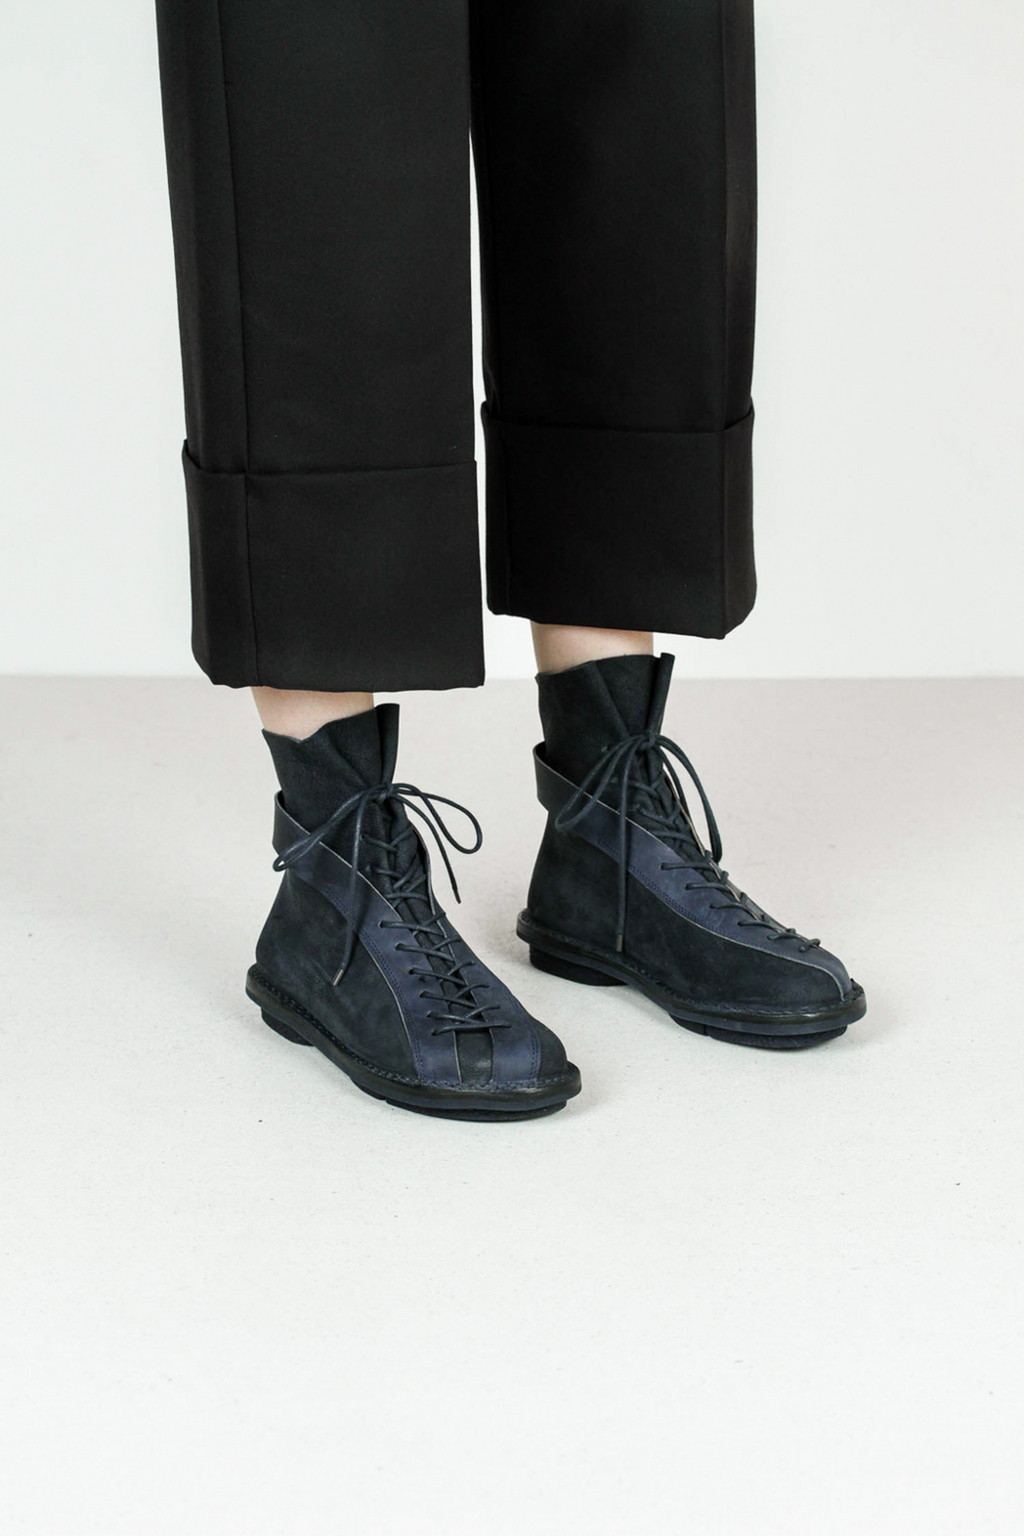 Trippen highway f tiz pull navy leather boots 3